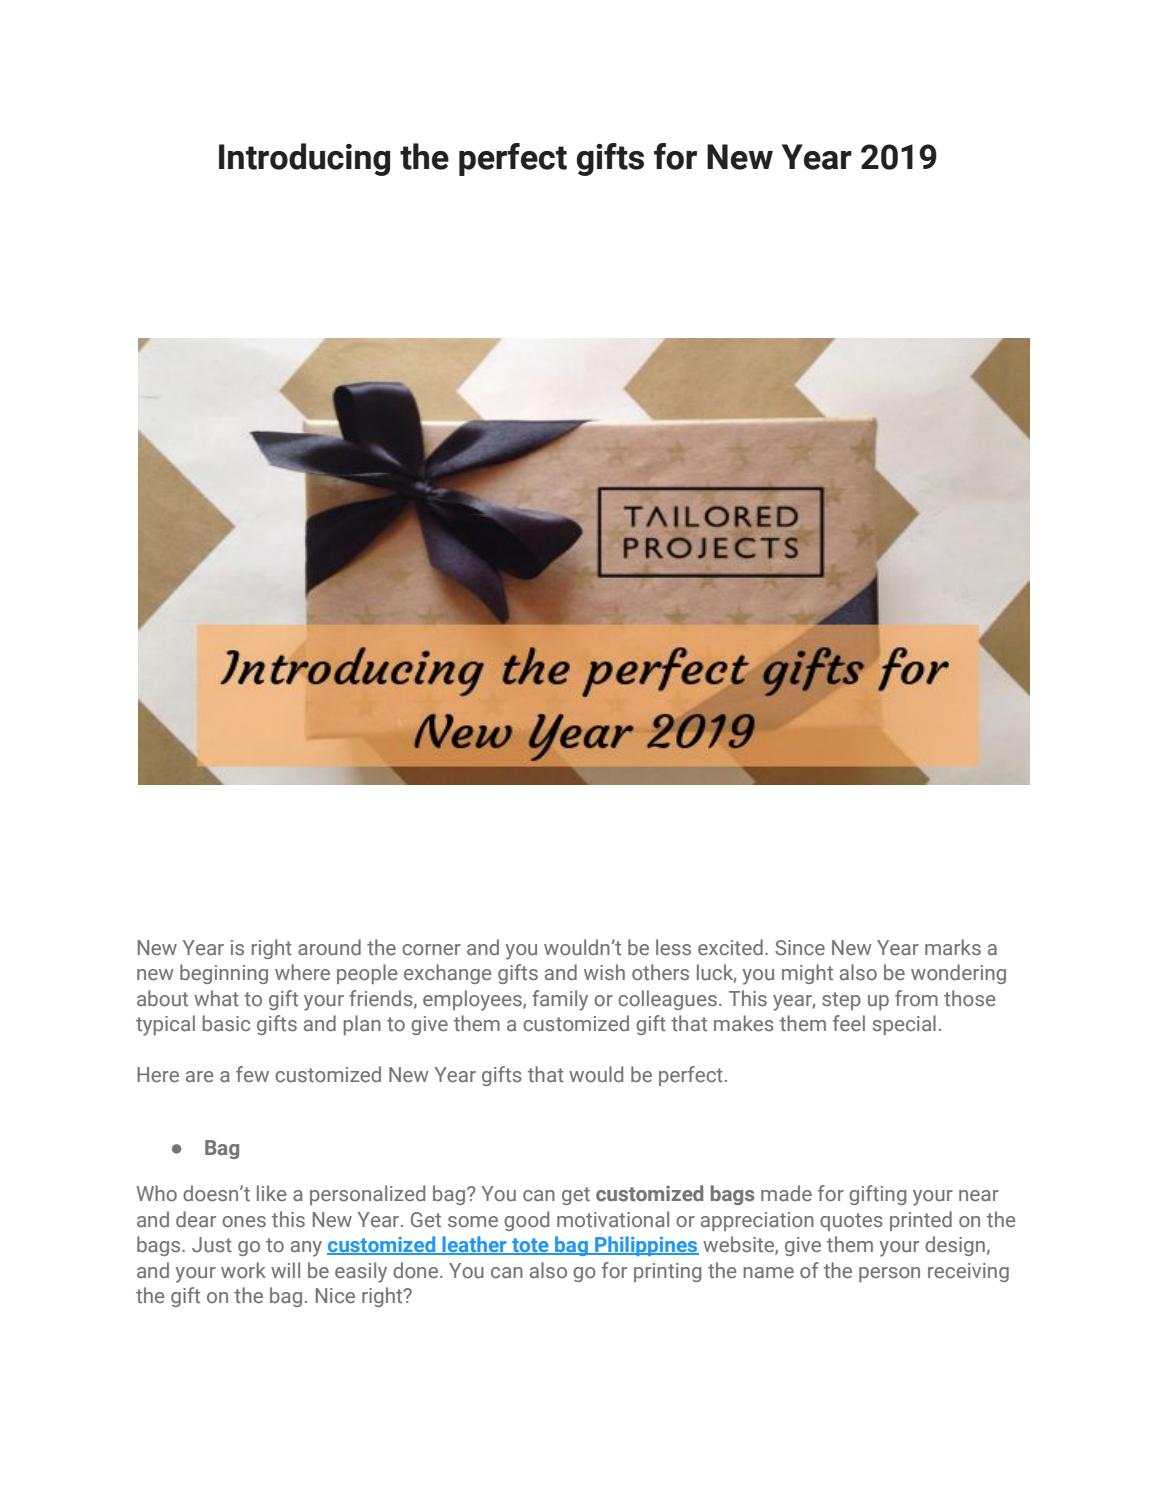 introducing the perfect gifts for new year by tailored